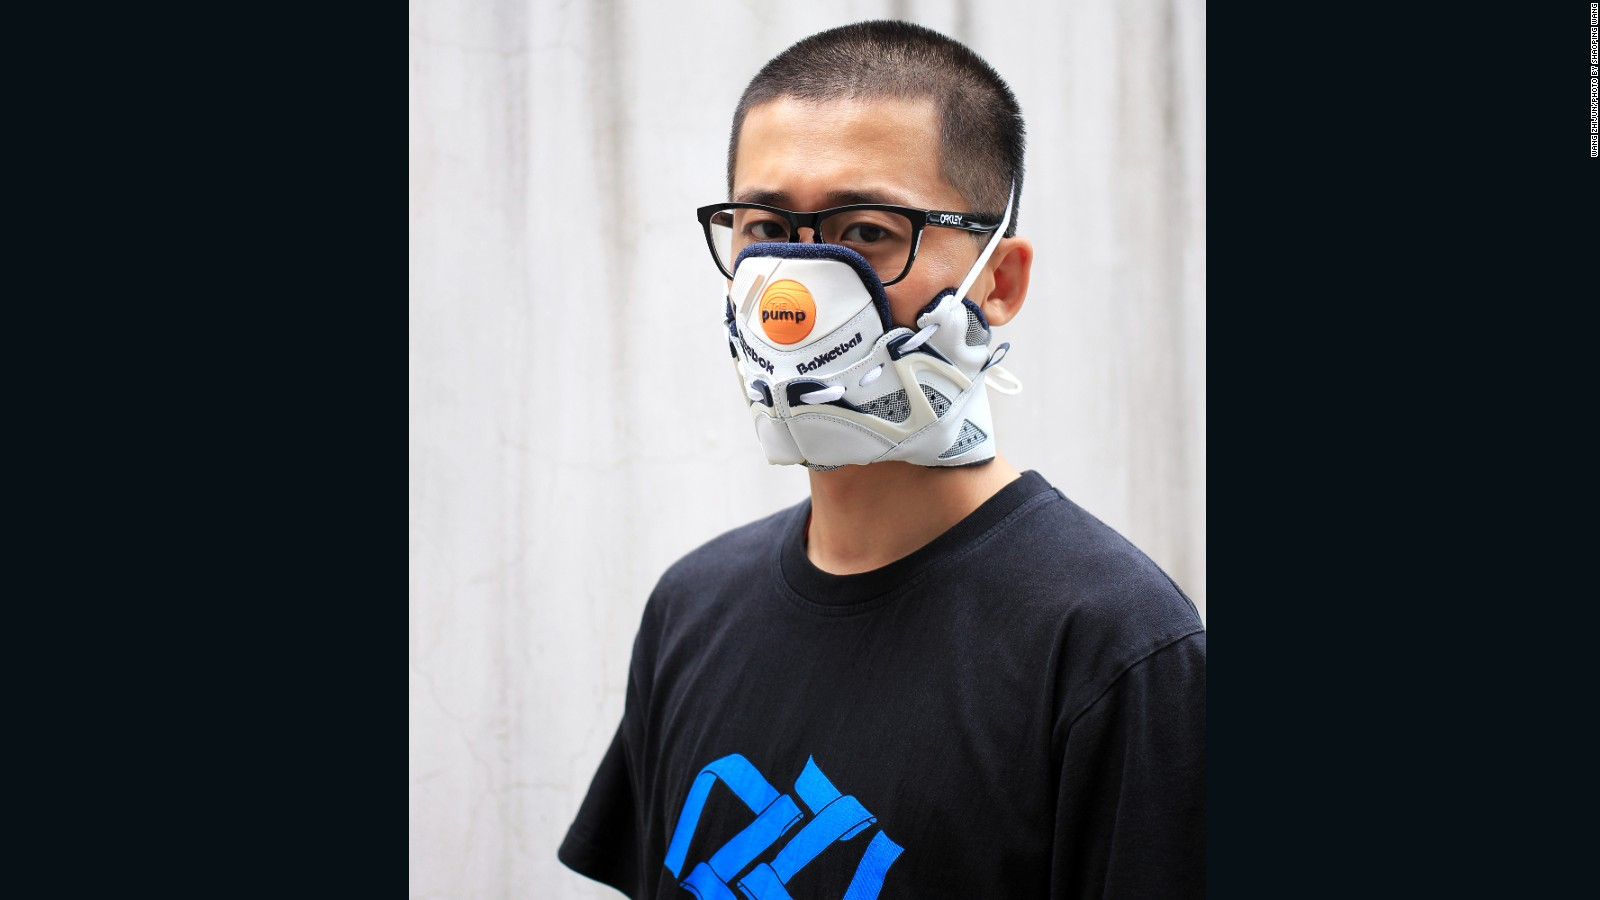 Made Sneakers Pollution High-end Masks Style From